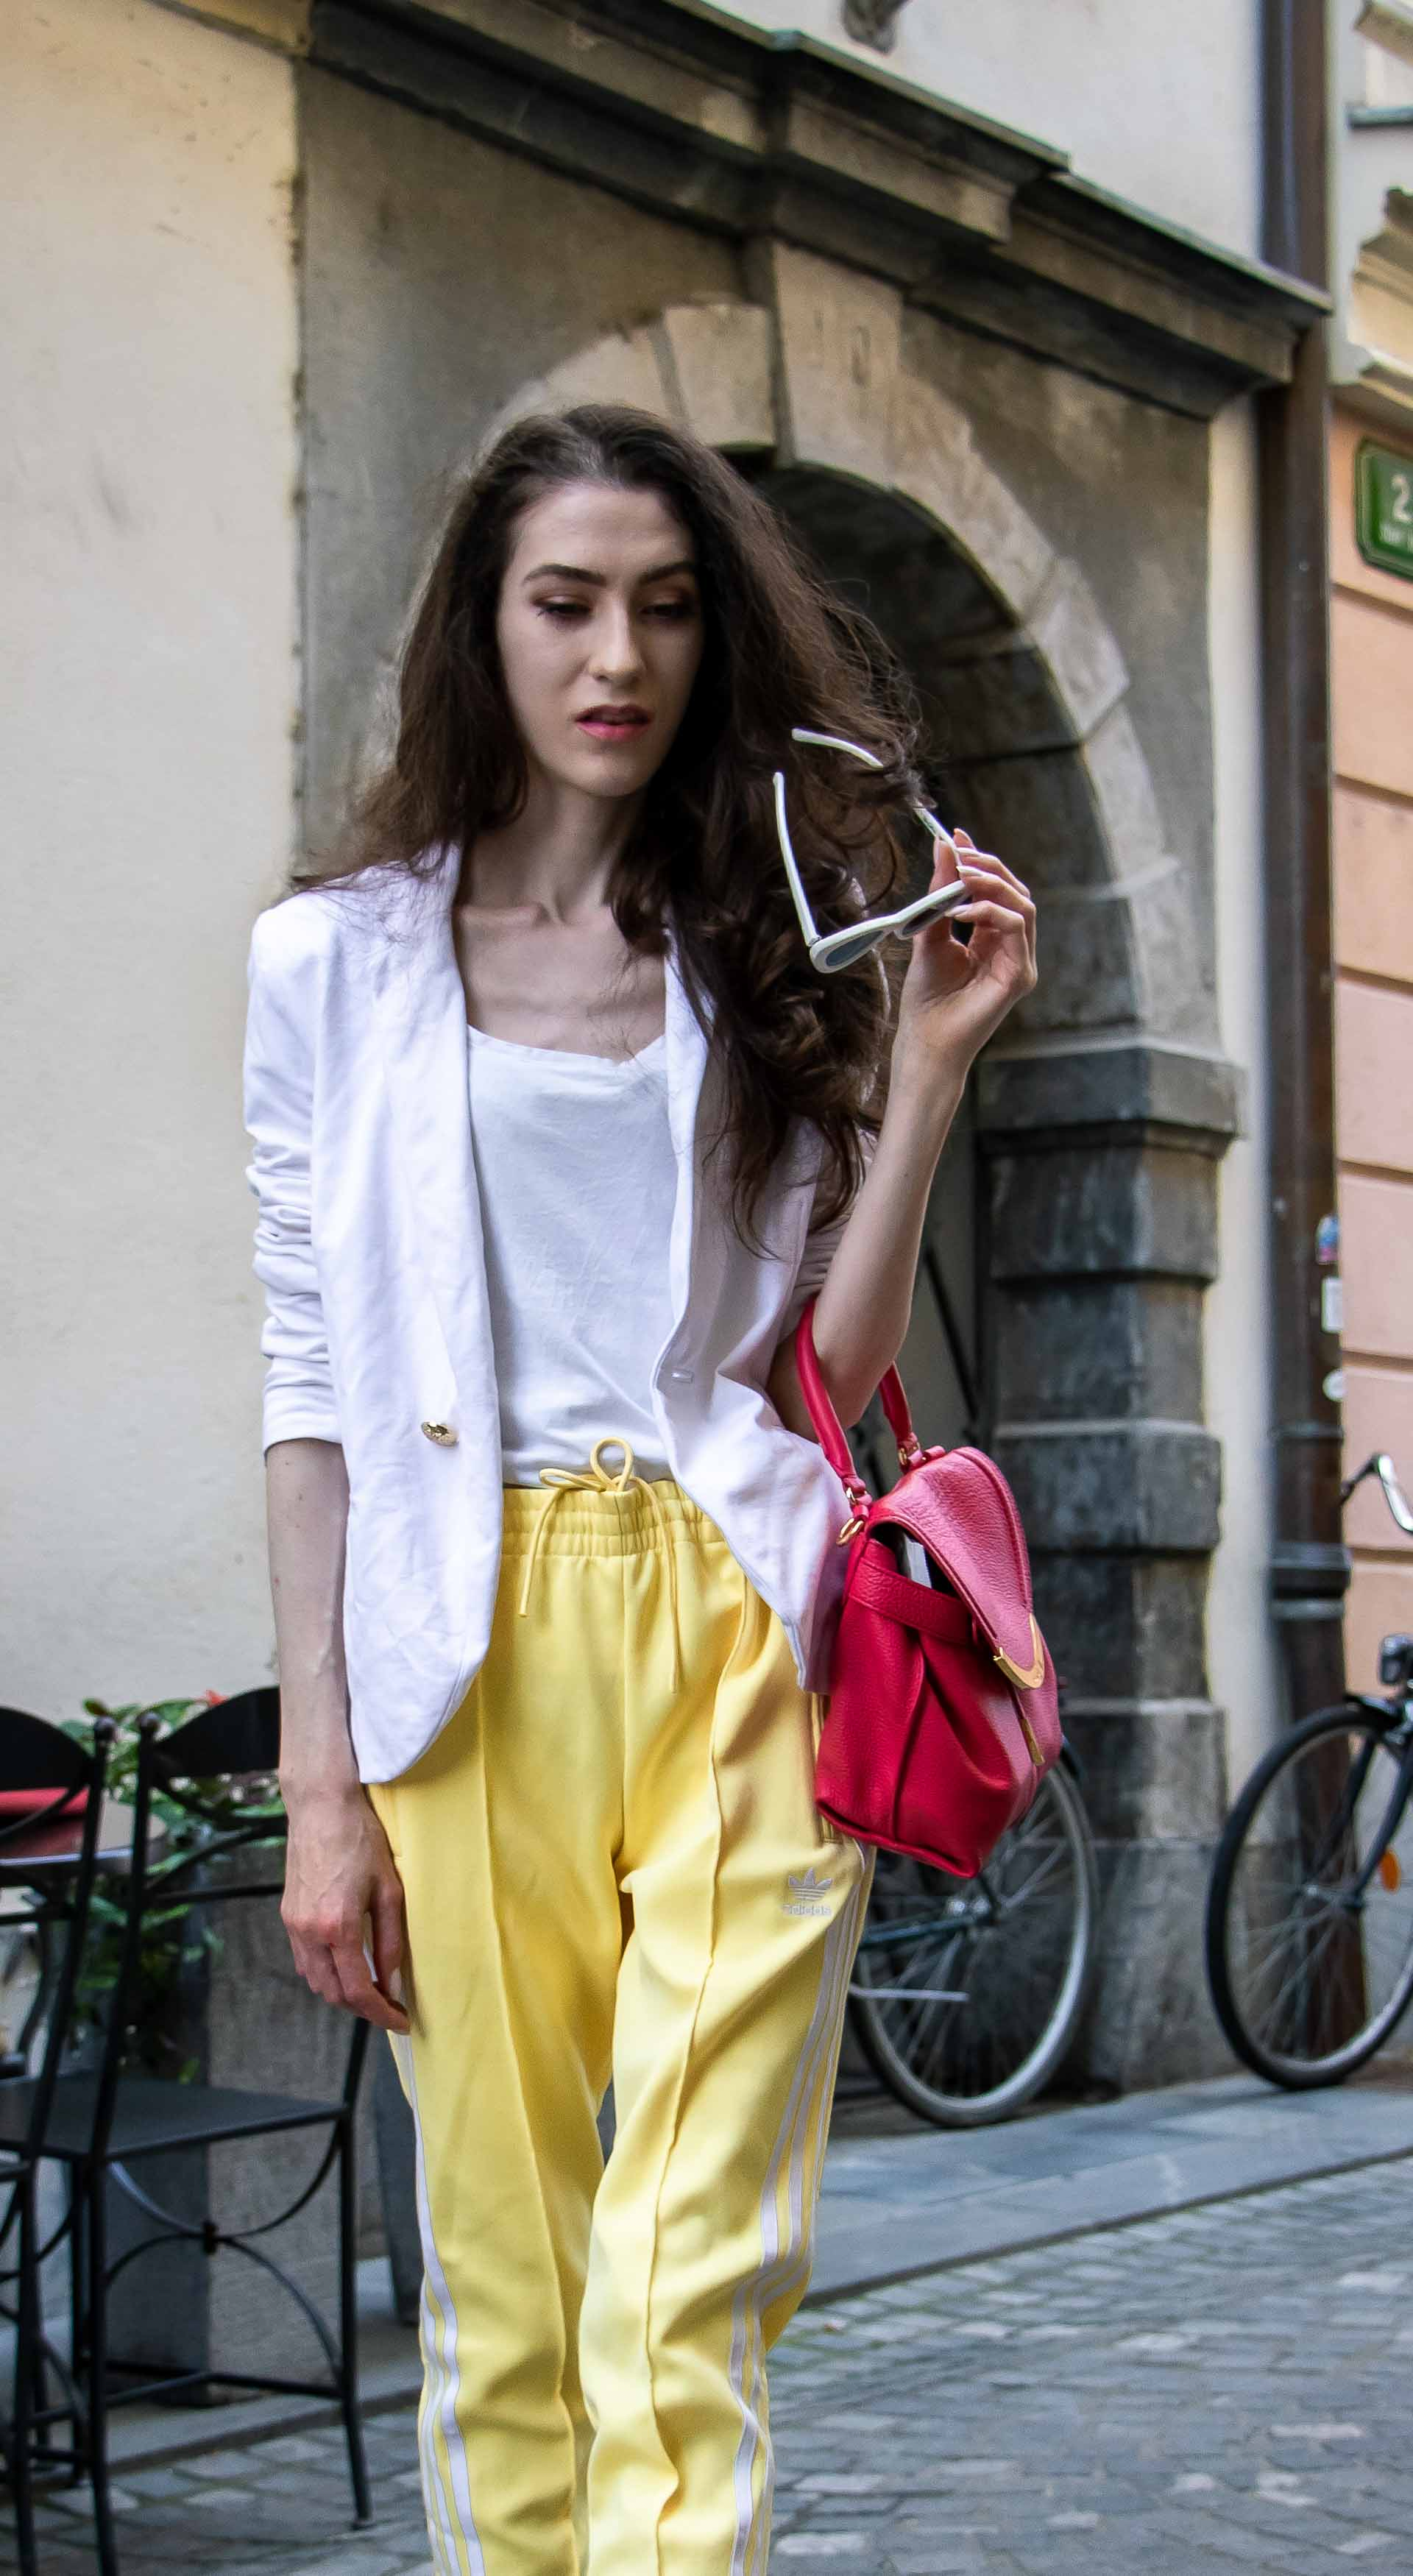 Veronika Lipar Fashion Blogger of Brunette from Wall Street wearing chic casual white blazer, white H&M t-shirt, yellow Addidas track pants, See by Chloé pink top handle bag, Adam Selman x Le Specs white cat eye Lolita sunglasses, pink blush Gianvito Rossi plexi pumps on the street